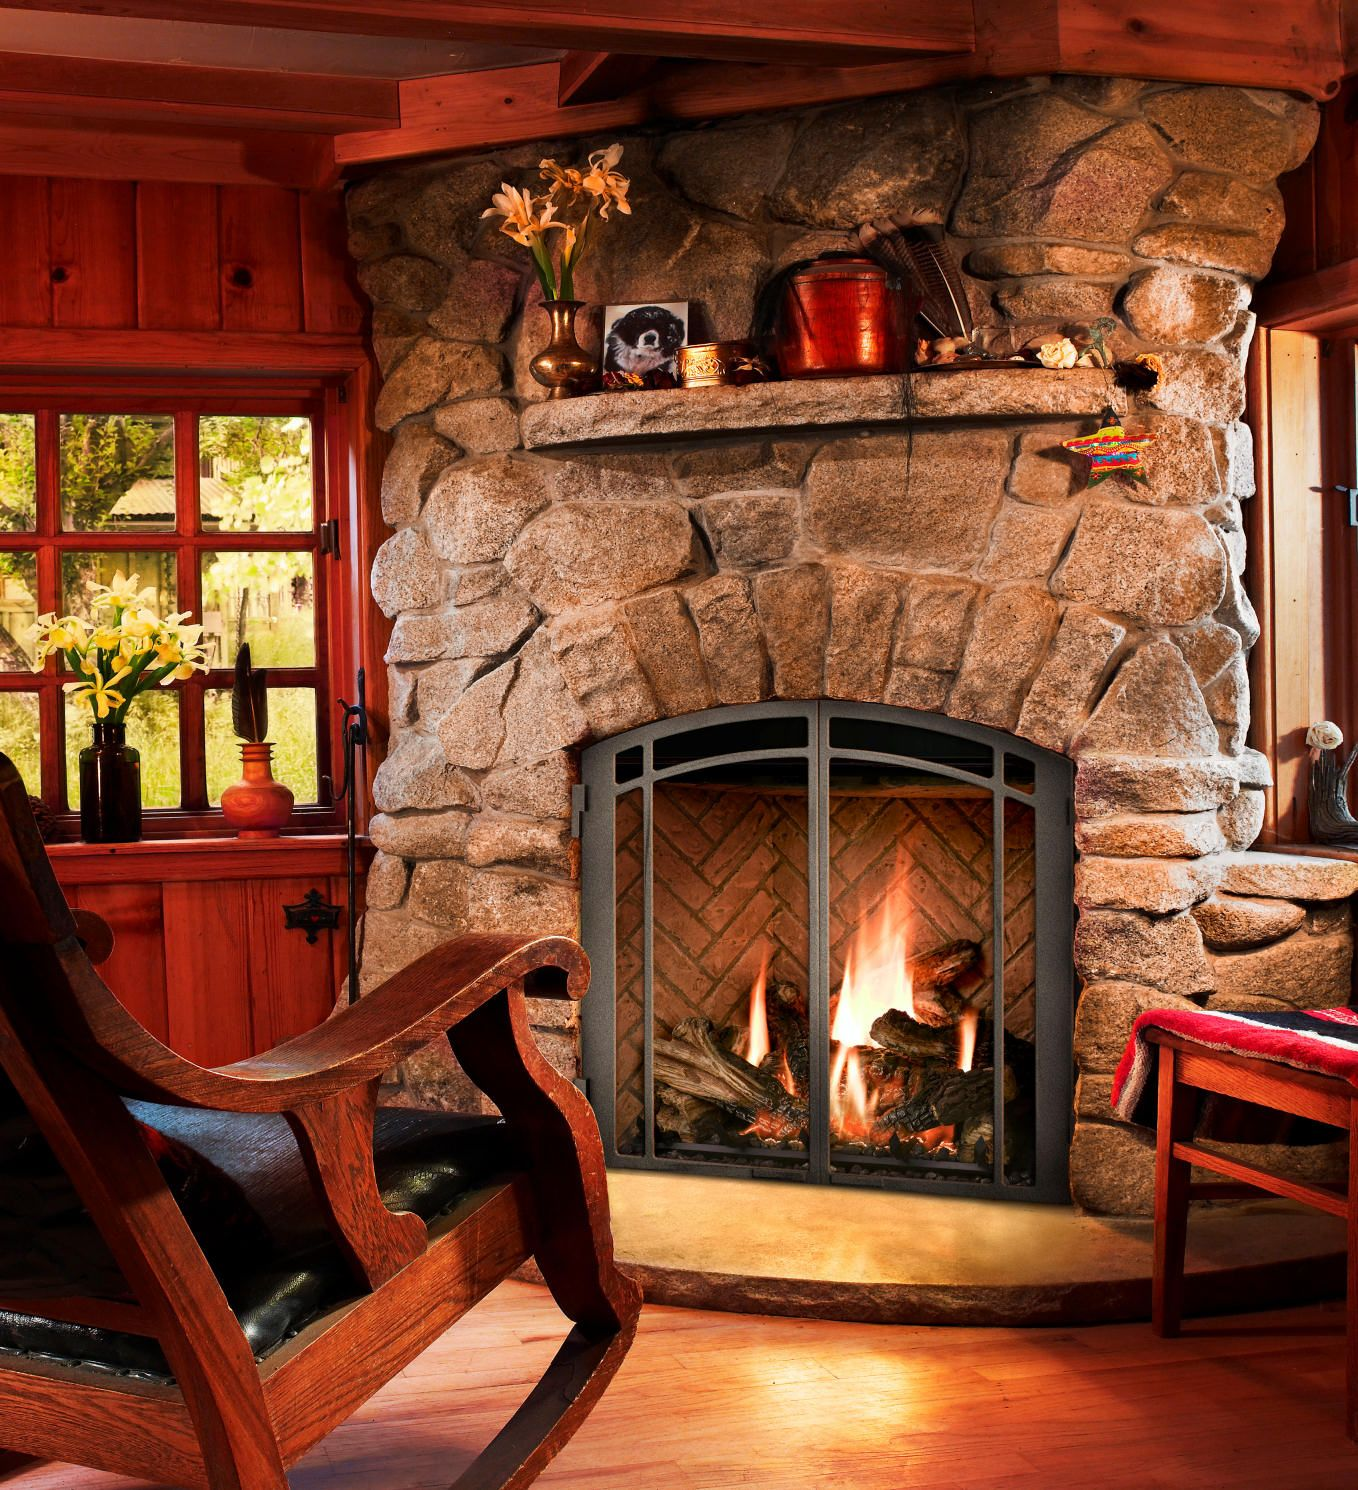 Gas Fireplace Tune Up Minneapolis Chimney Sweep Inspection And Repair For All Wood Burning Fireplaces